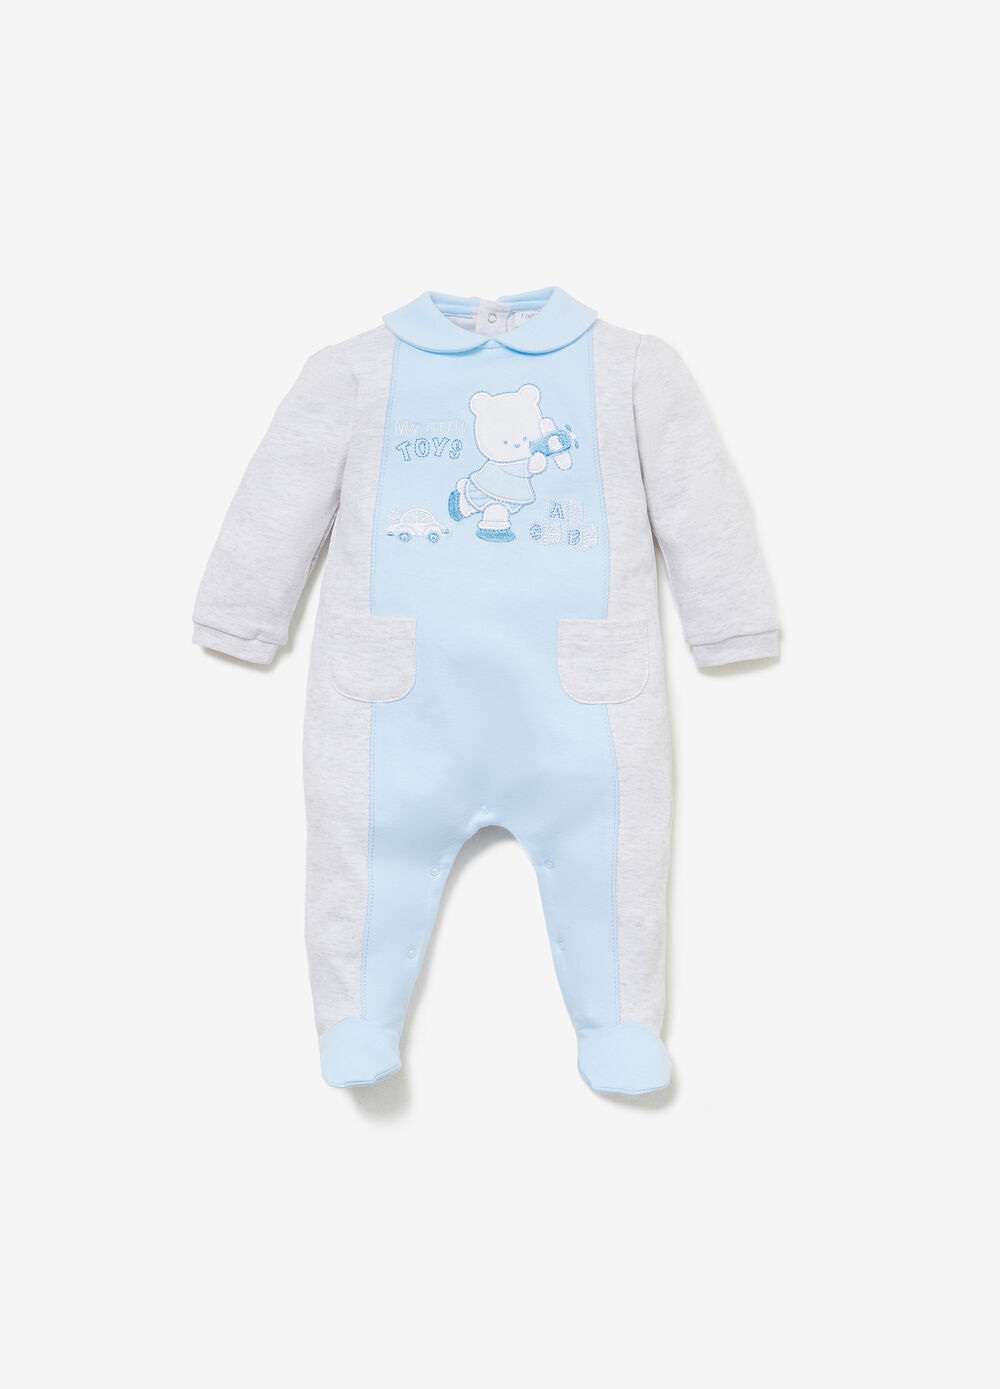 Two-tone romper suit with patch